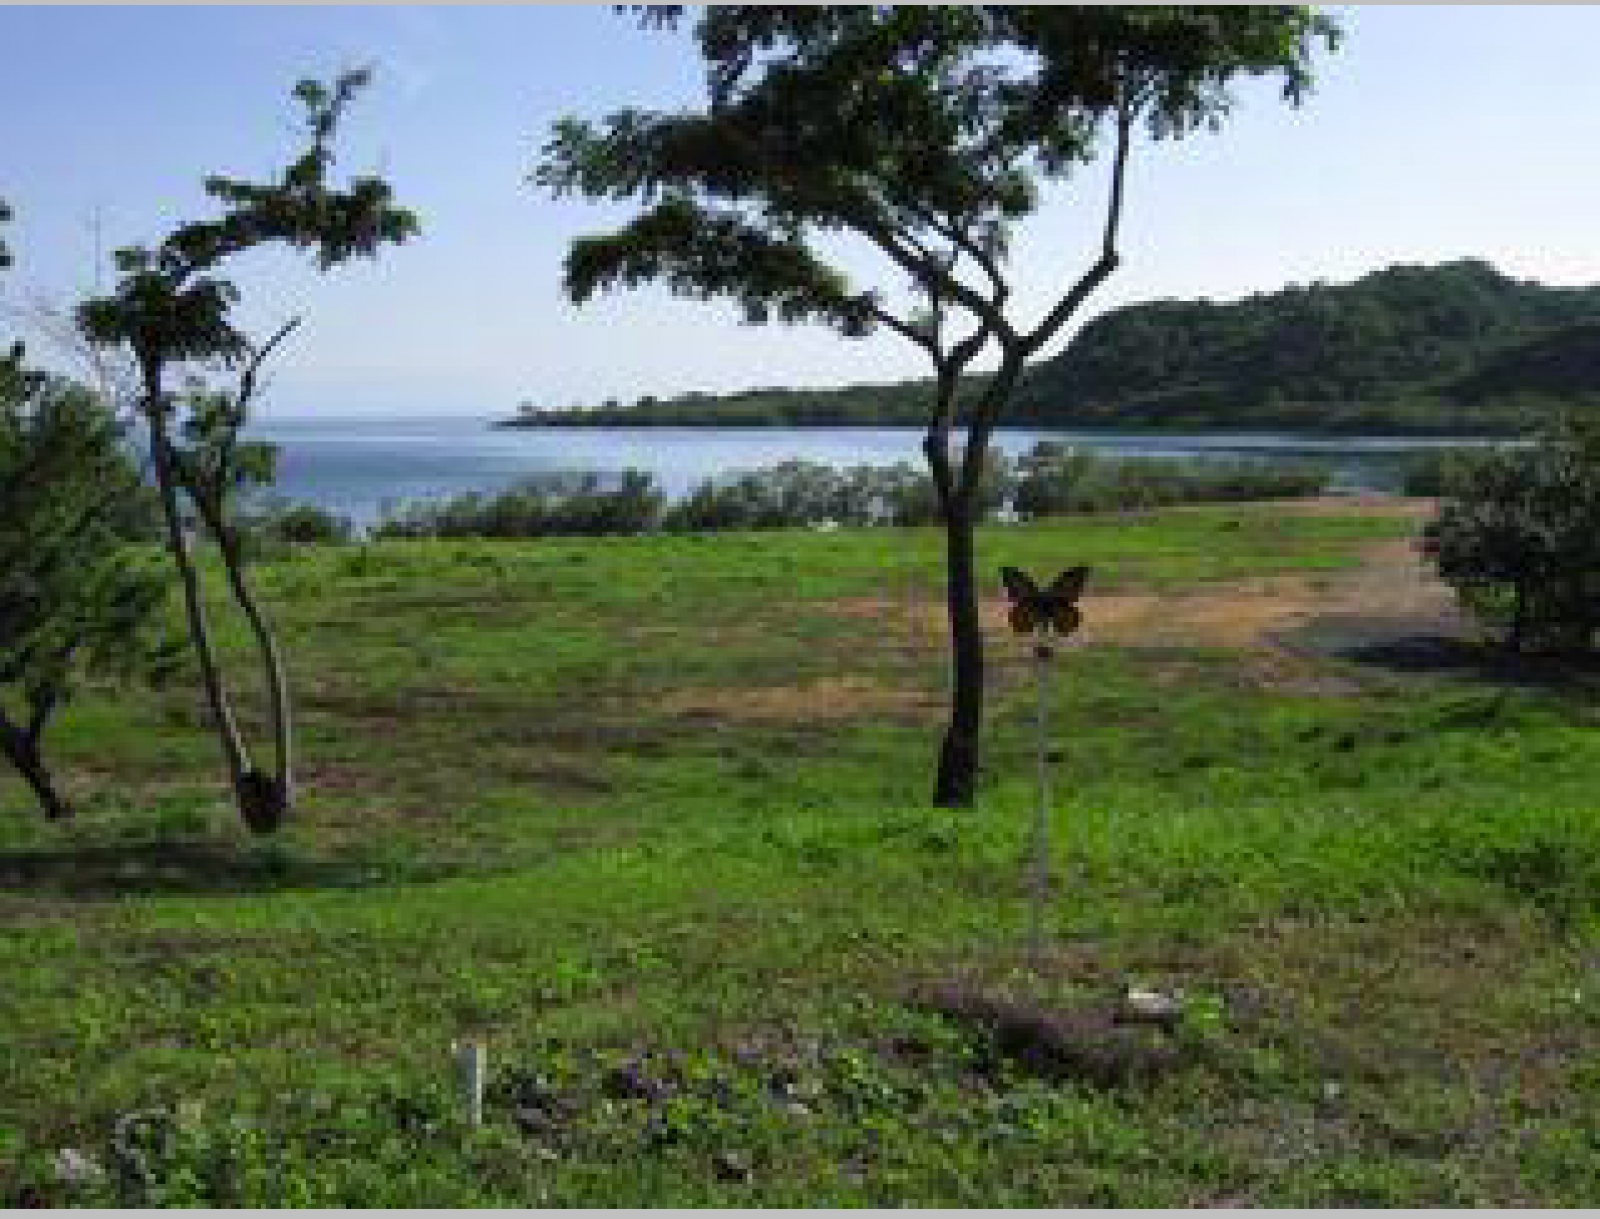 Flat, buildable lot overlooking the water